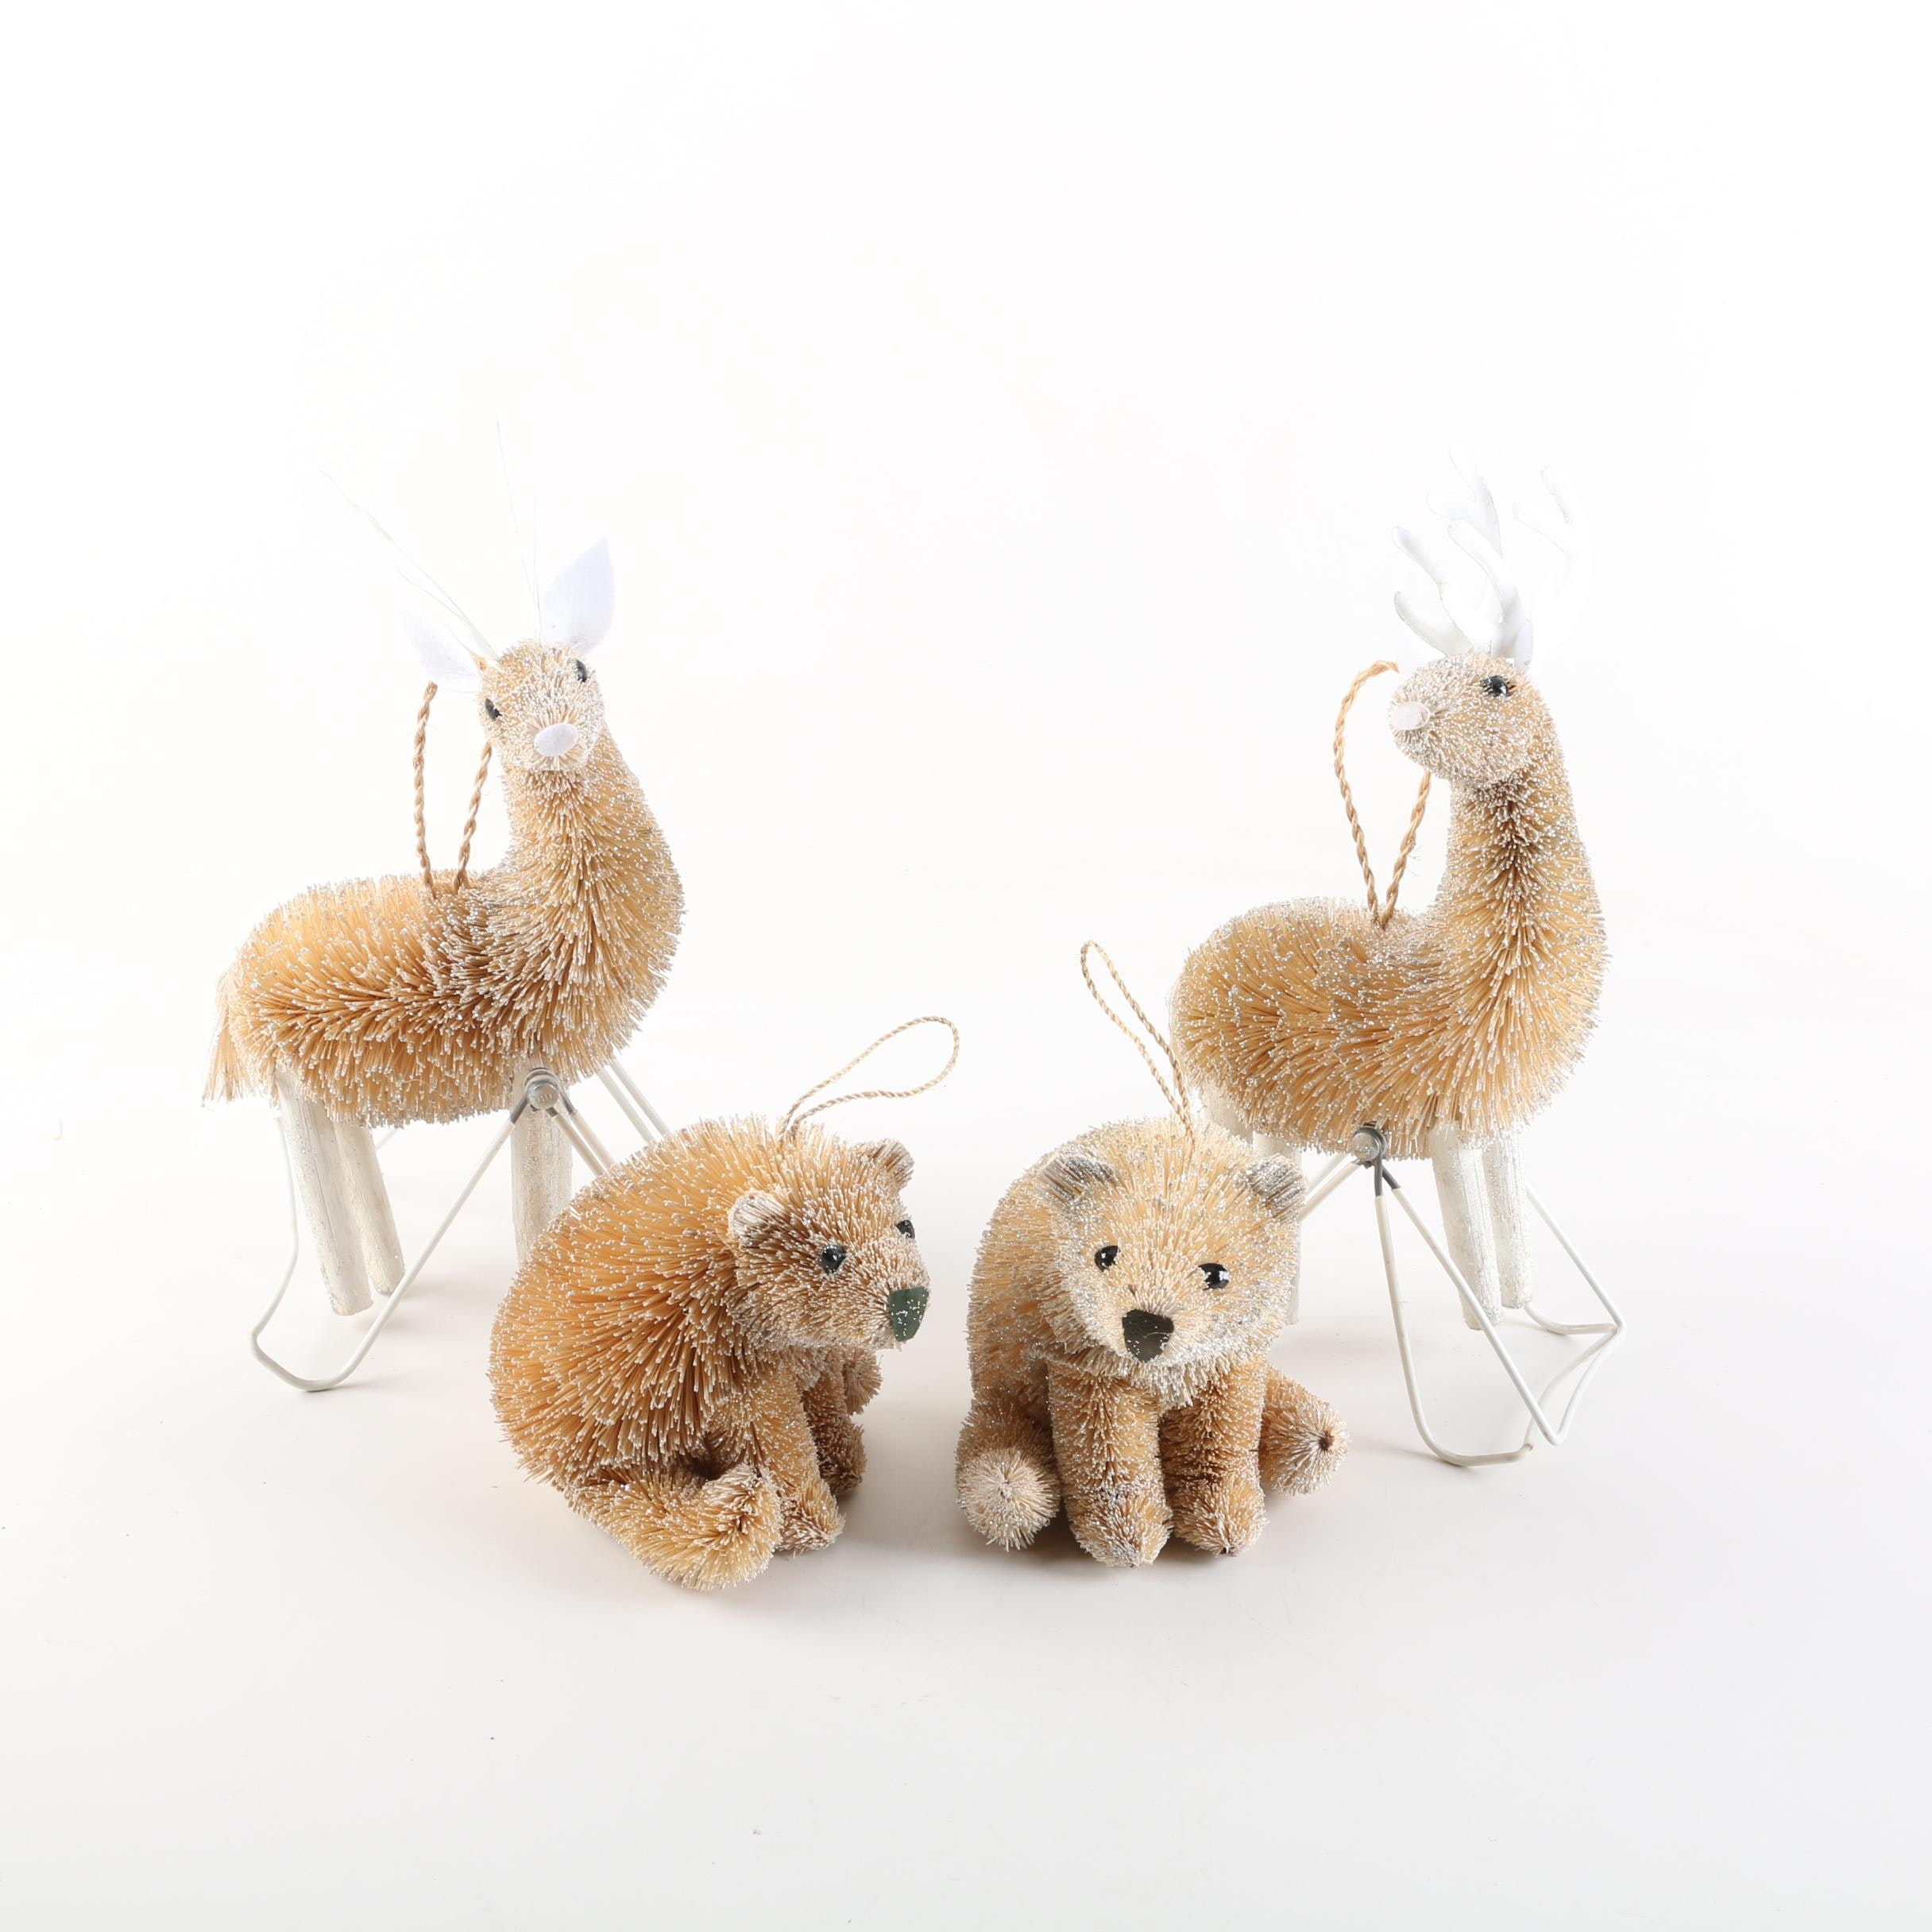 Bear and Reindeer Christmas Tree Ornaments